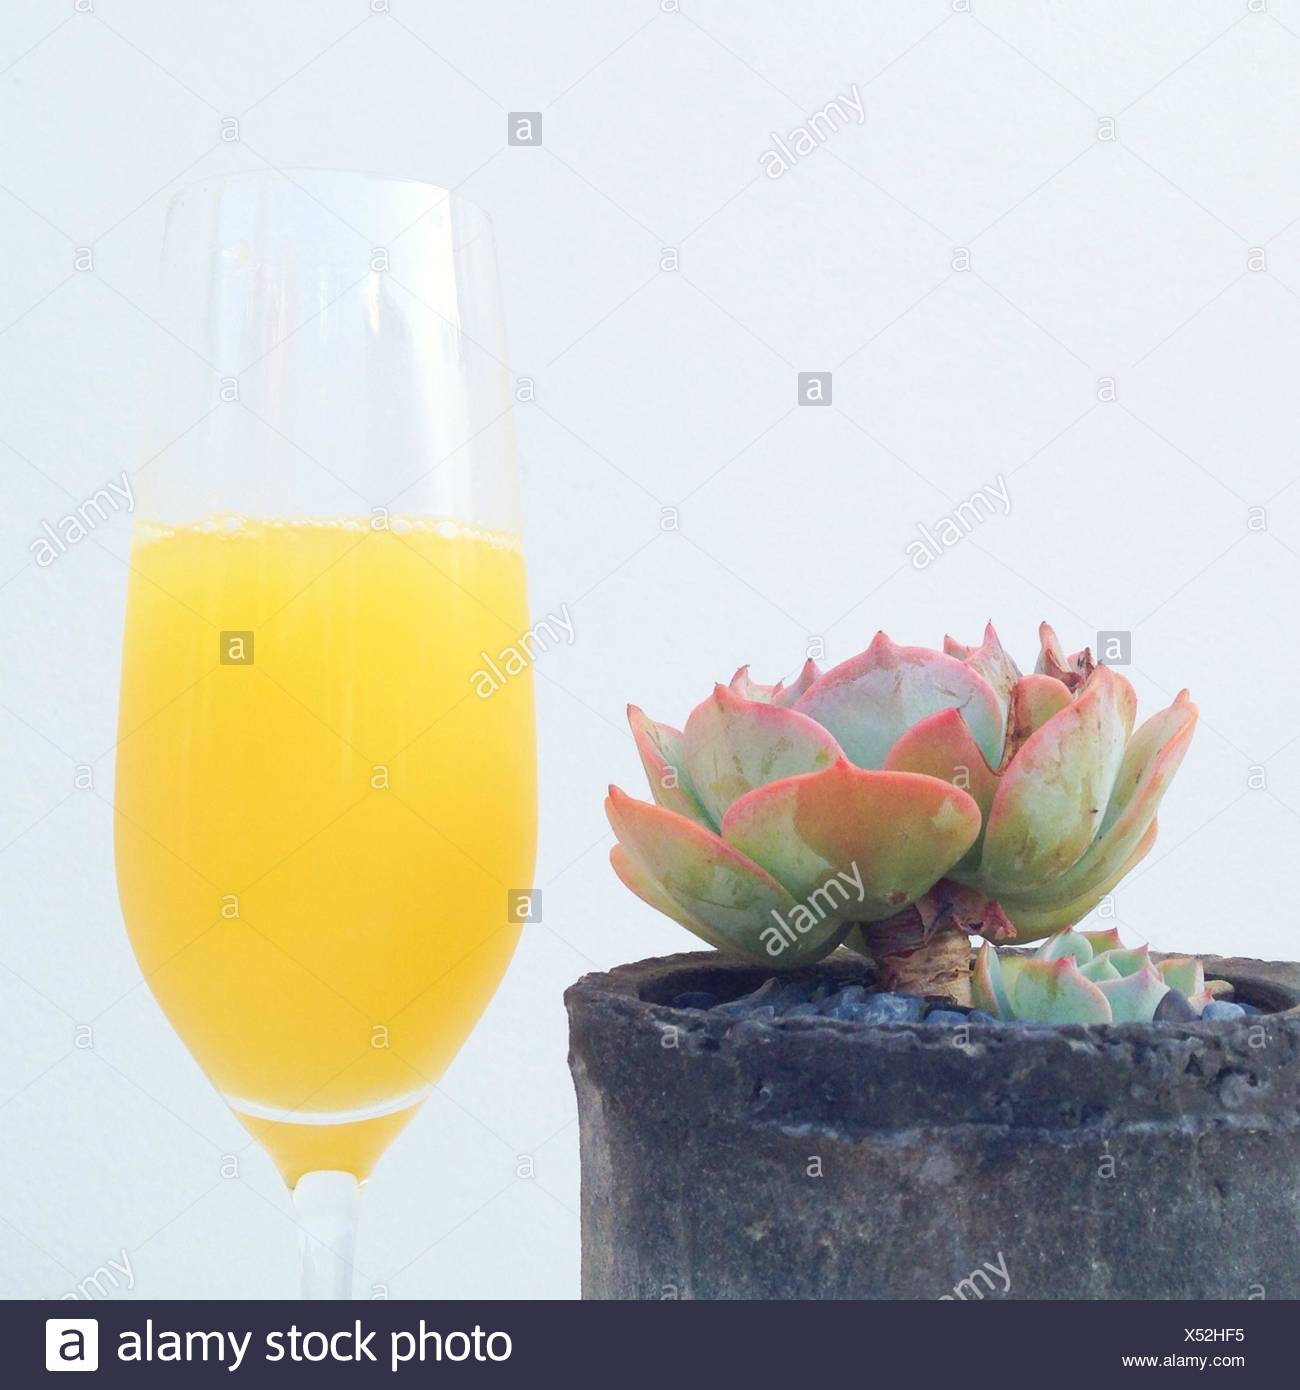 Potted plant and orange juice in champaign flute - Stock Image